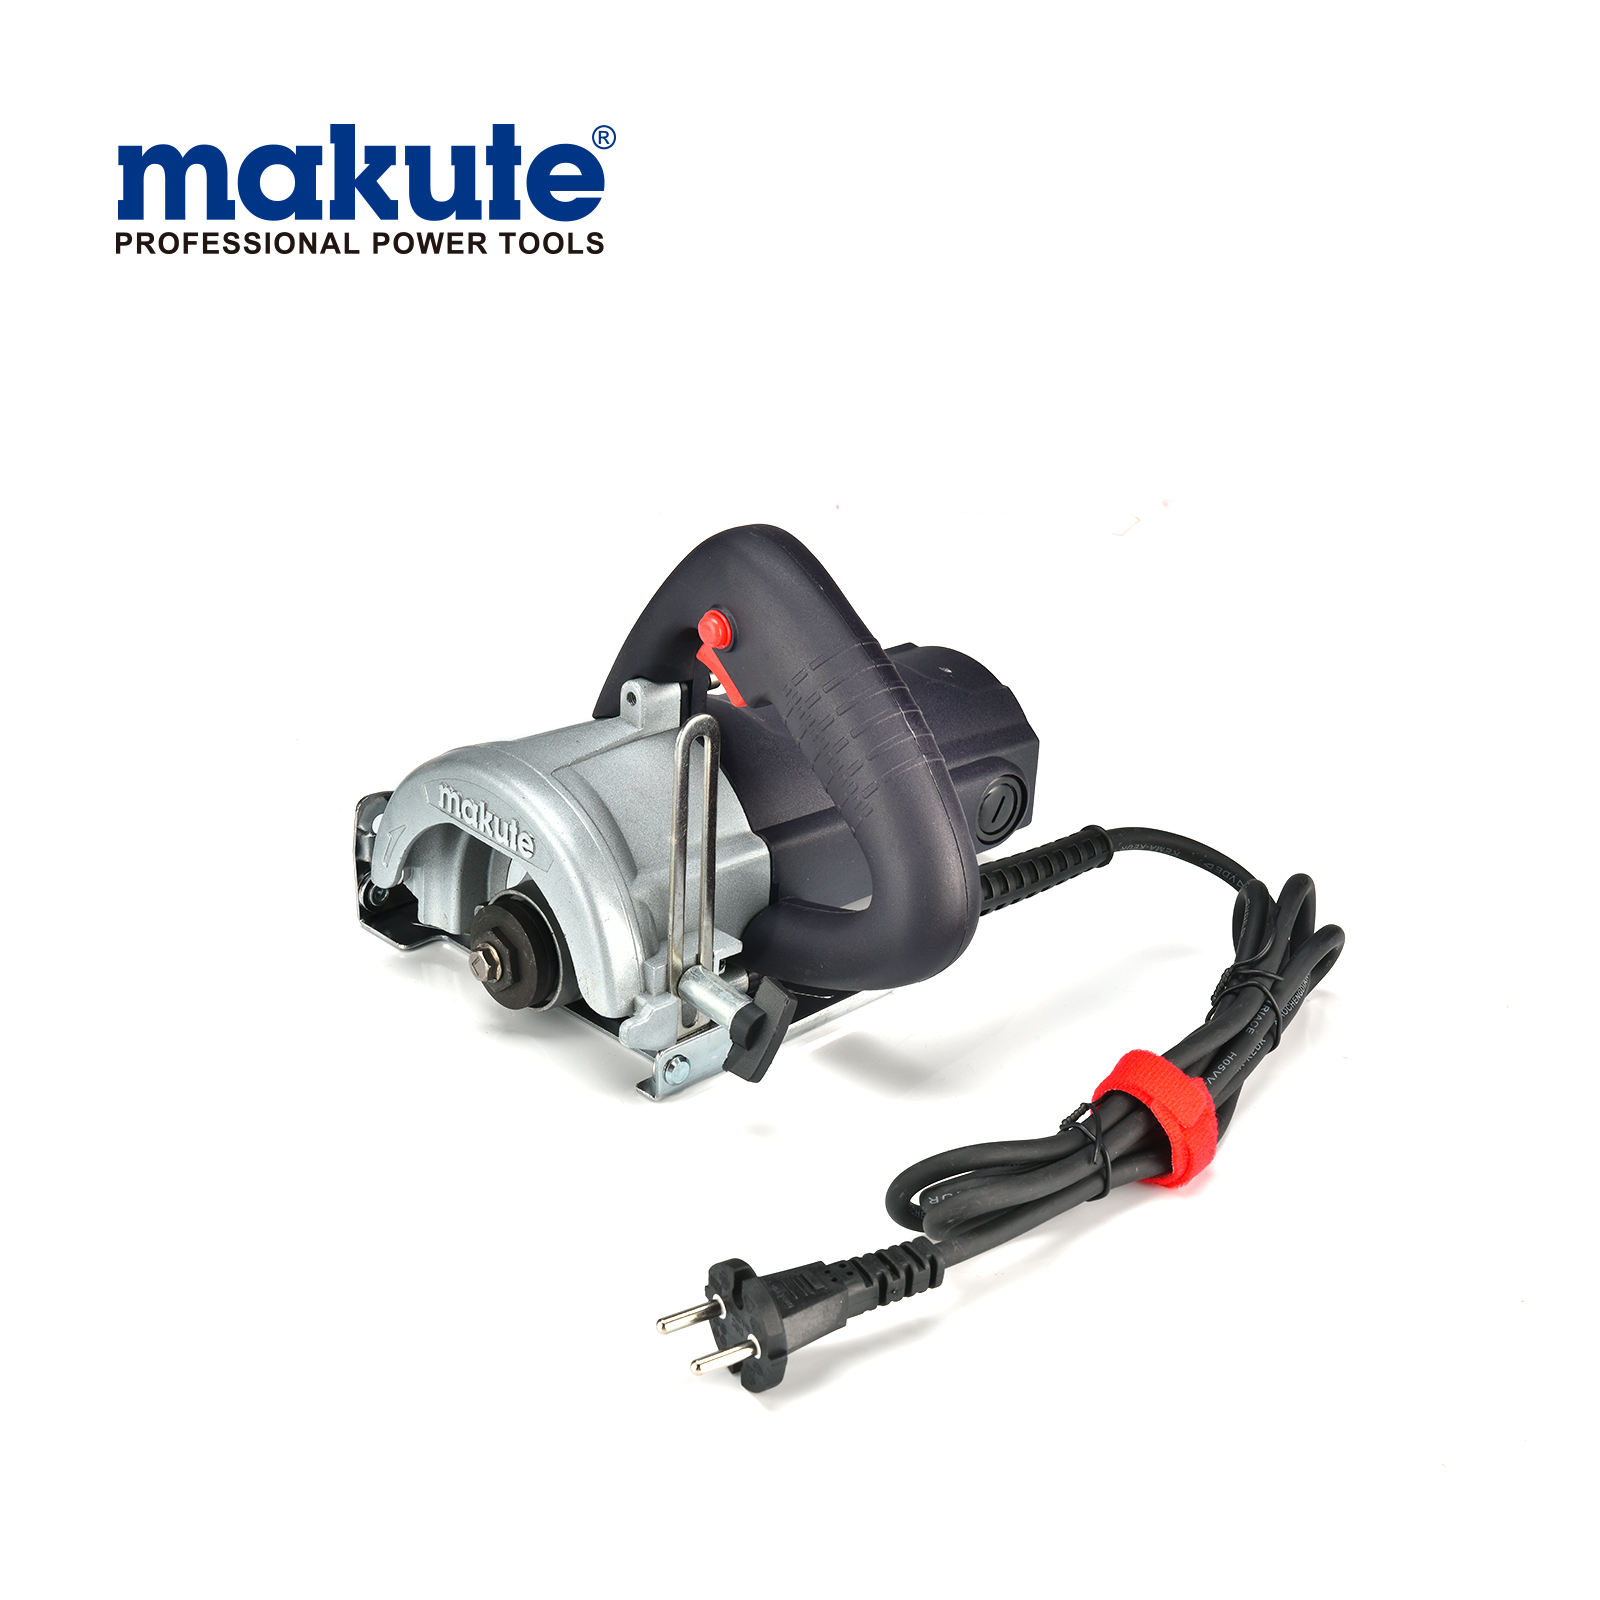 Marble stone cutting machine MAKUTE professional MC002 marble cutter